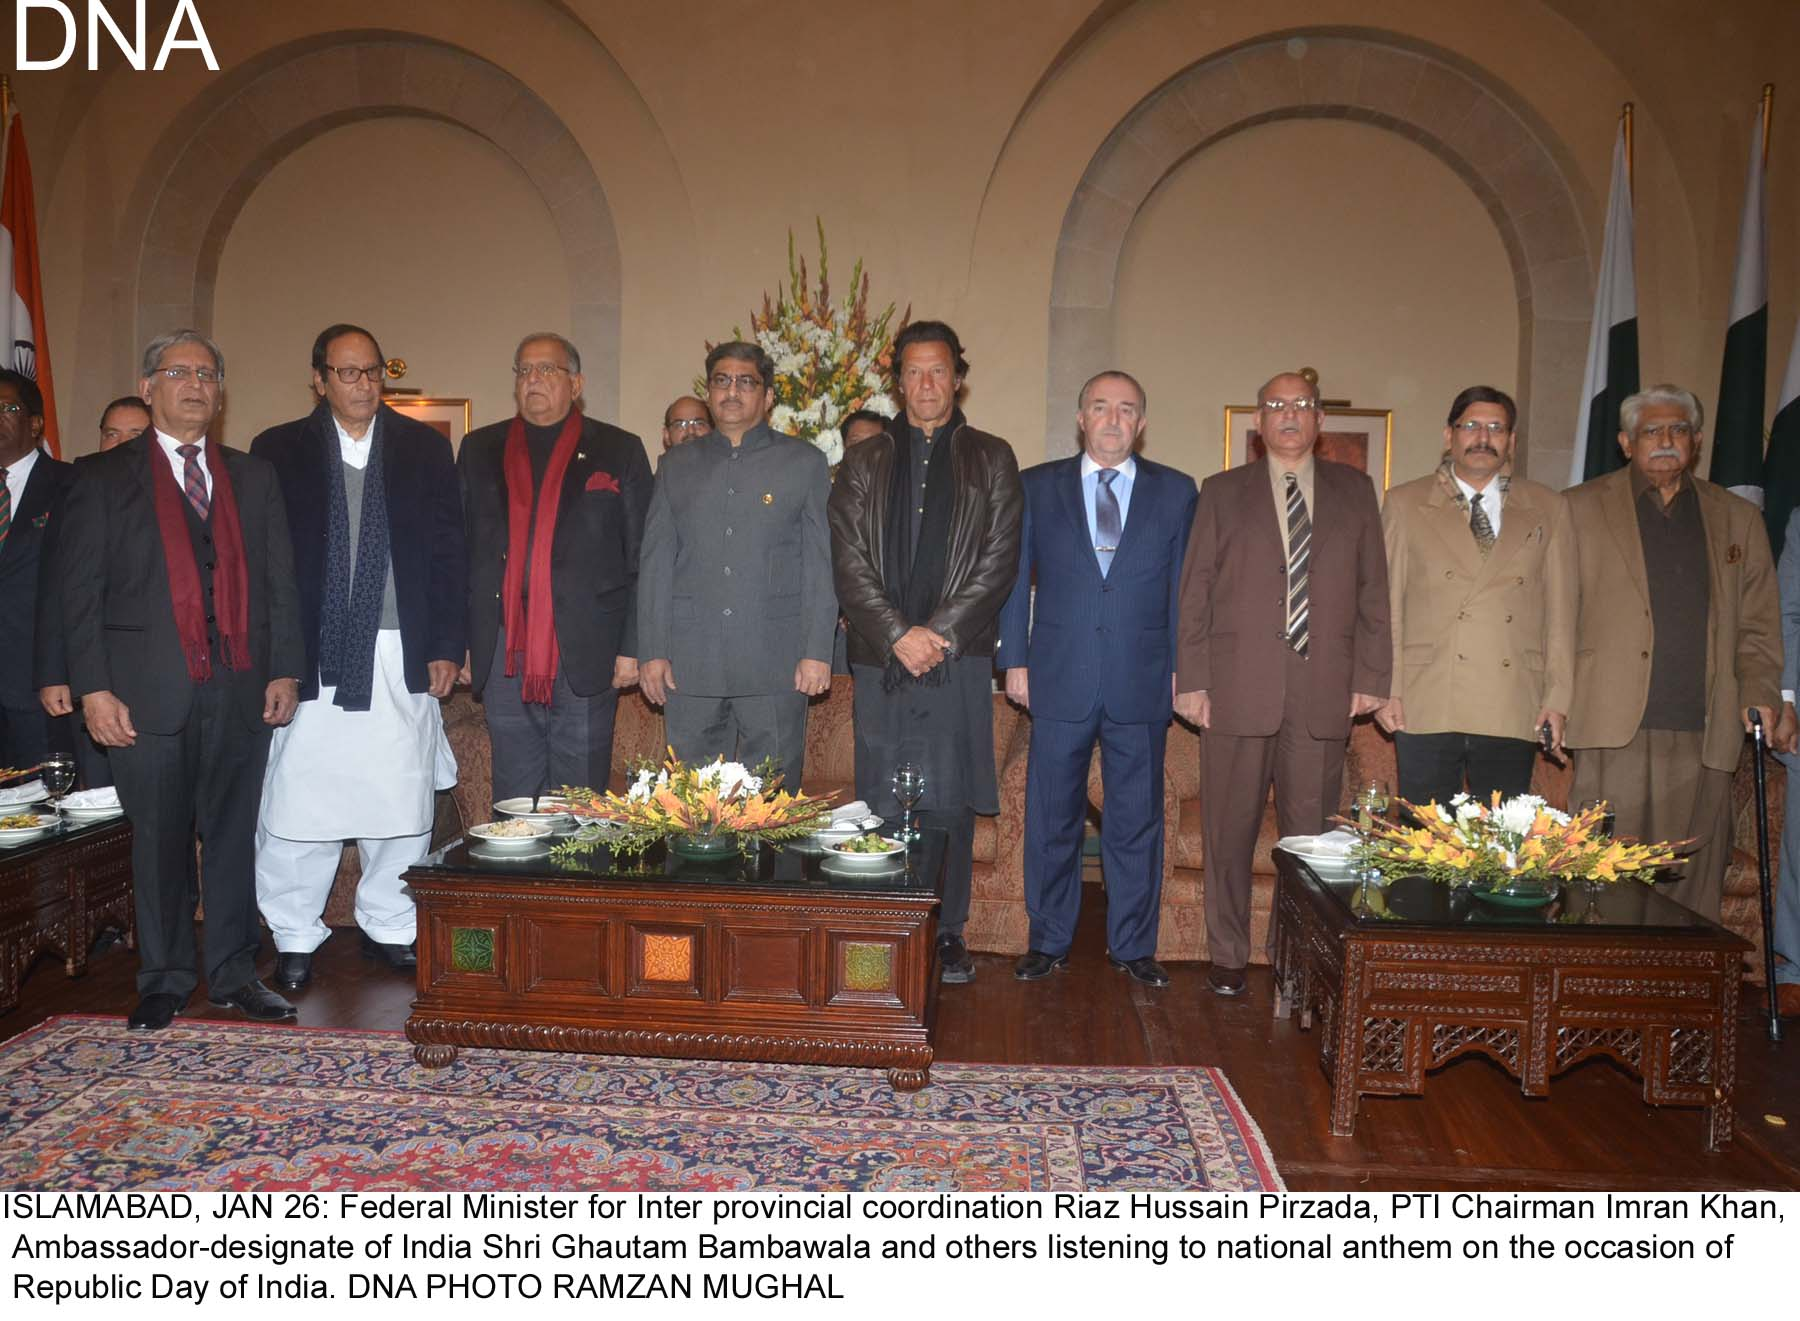 ISLAMABAD, JAN 26: Federal Minister for Inter provincial coordination Riaz Hussain Pirzada, PTI Chairman Imran Khan, Ambassador-designate of India Shri Ghautam Bambawala and others listening to national anthem on the occasion of Republic Day of India. DNA PHOTO RAMZAN MUGHAL